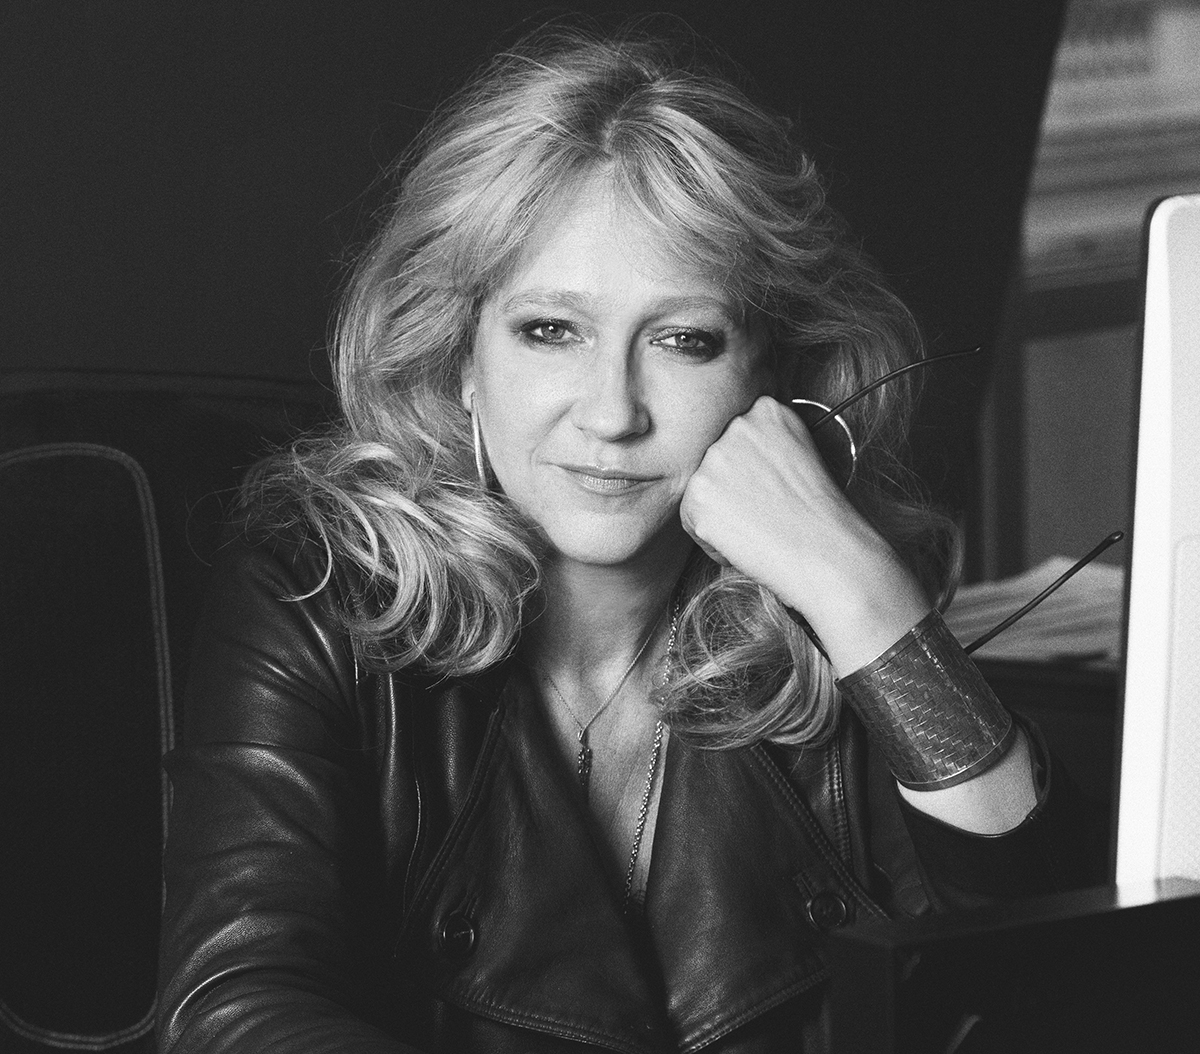 Sonia Friedman: Everyone was looking to me, so I took the decision